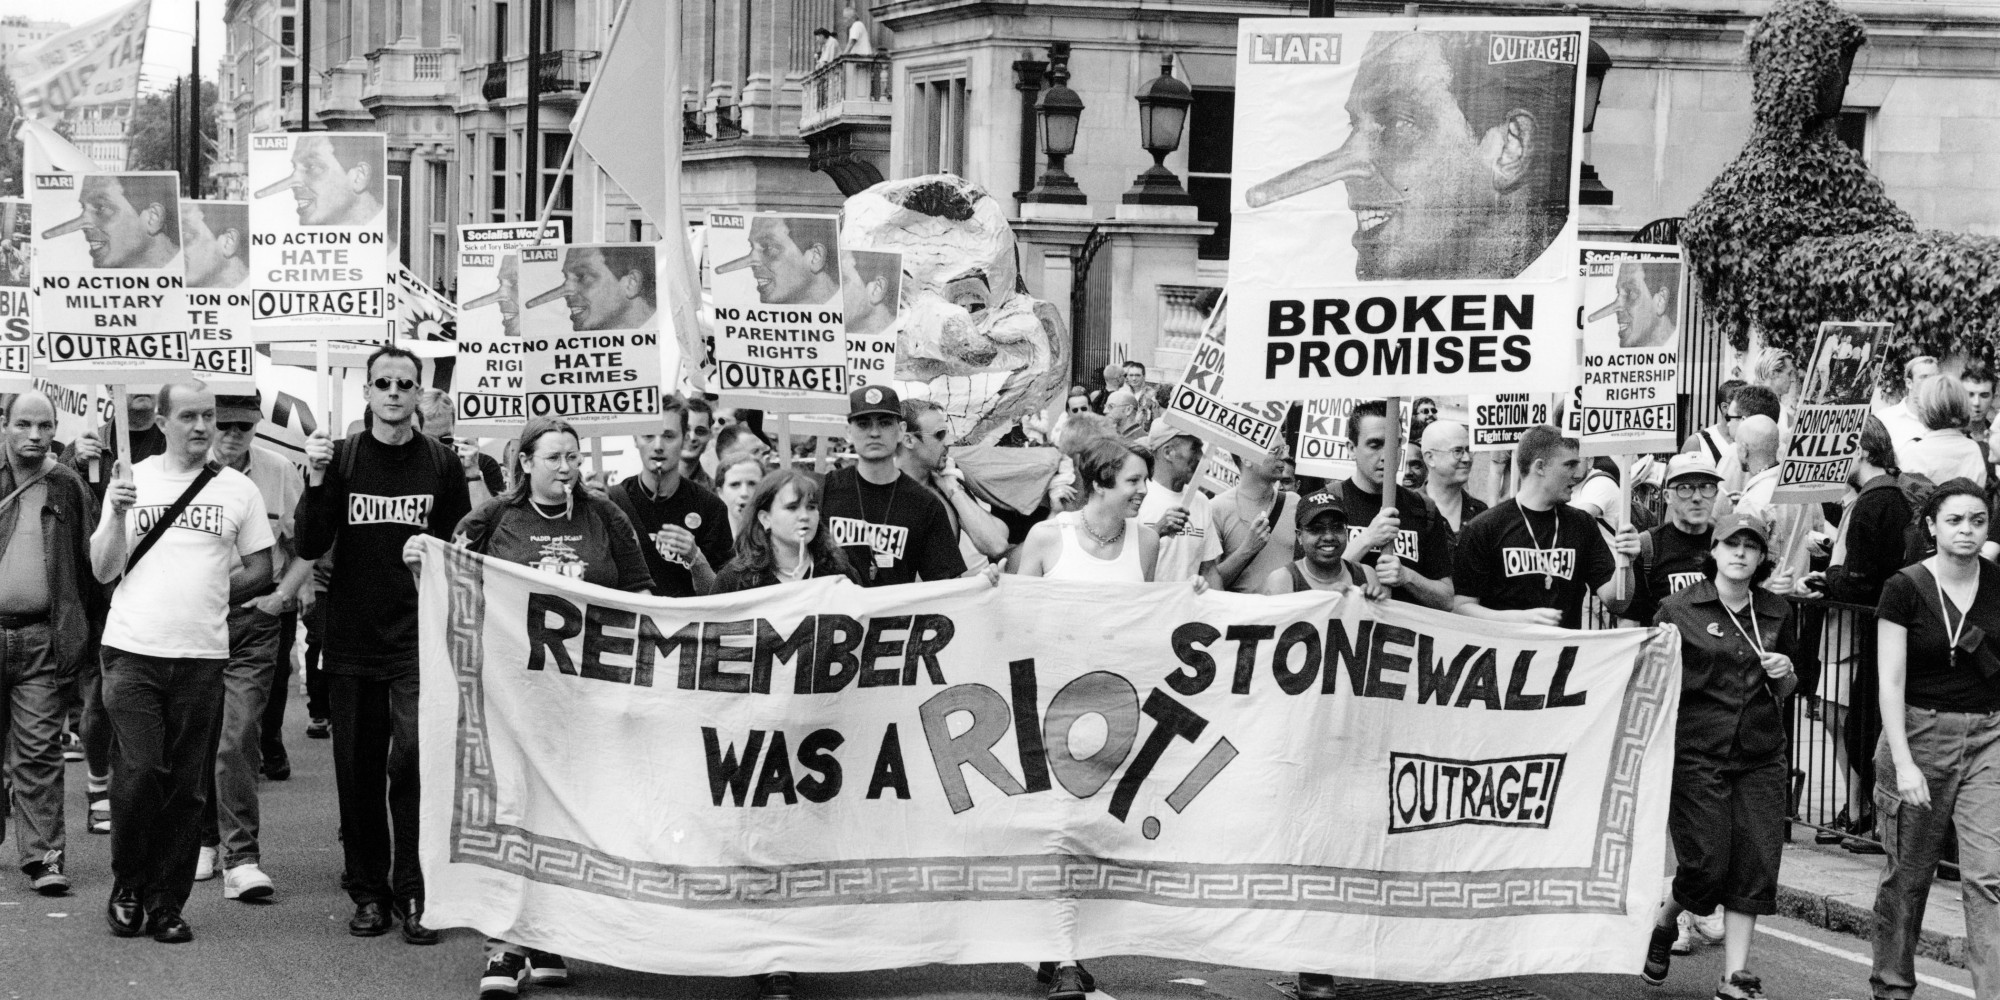 the events of the stonewall riots and its impact on lgbt movement